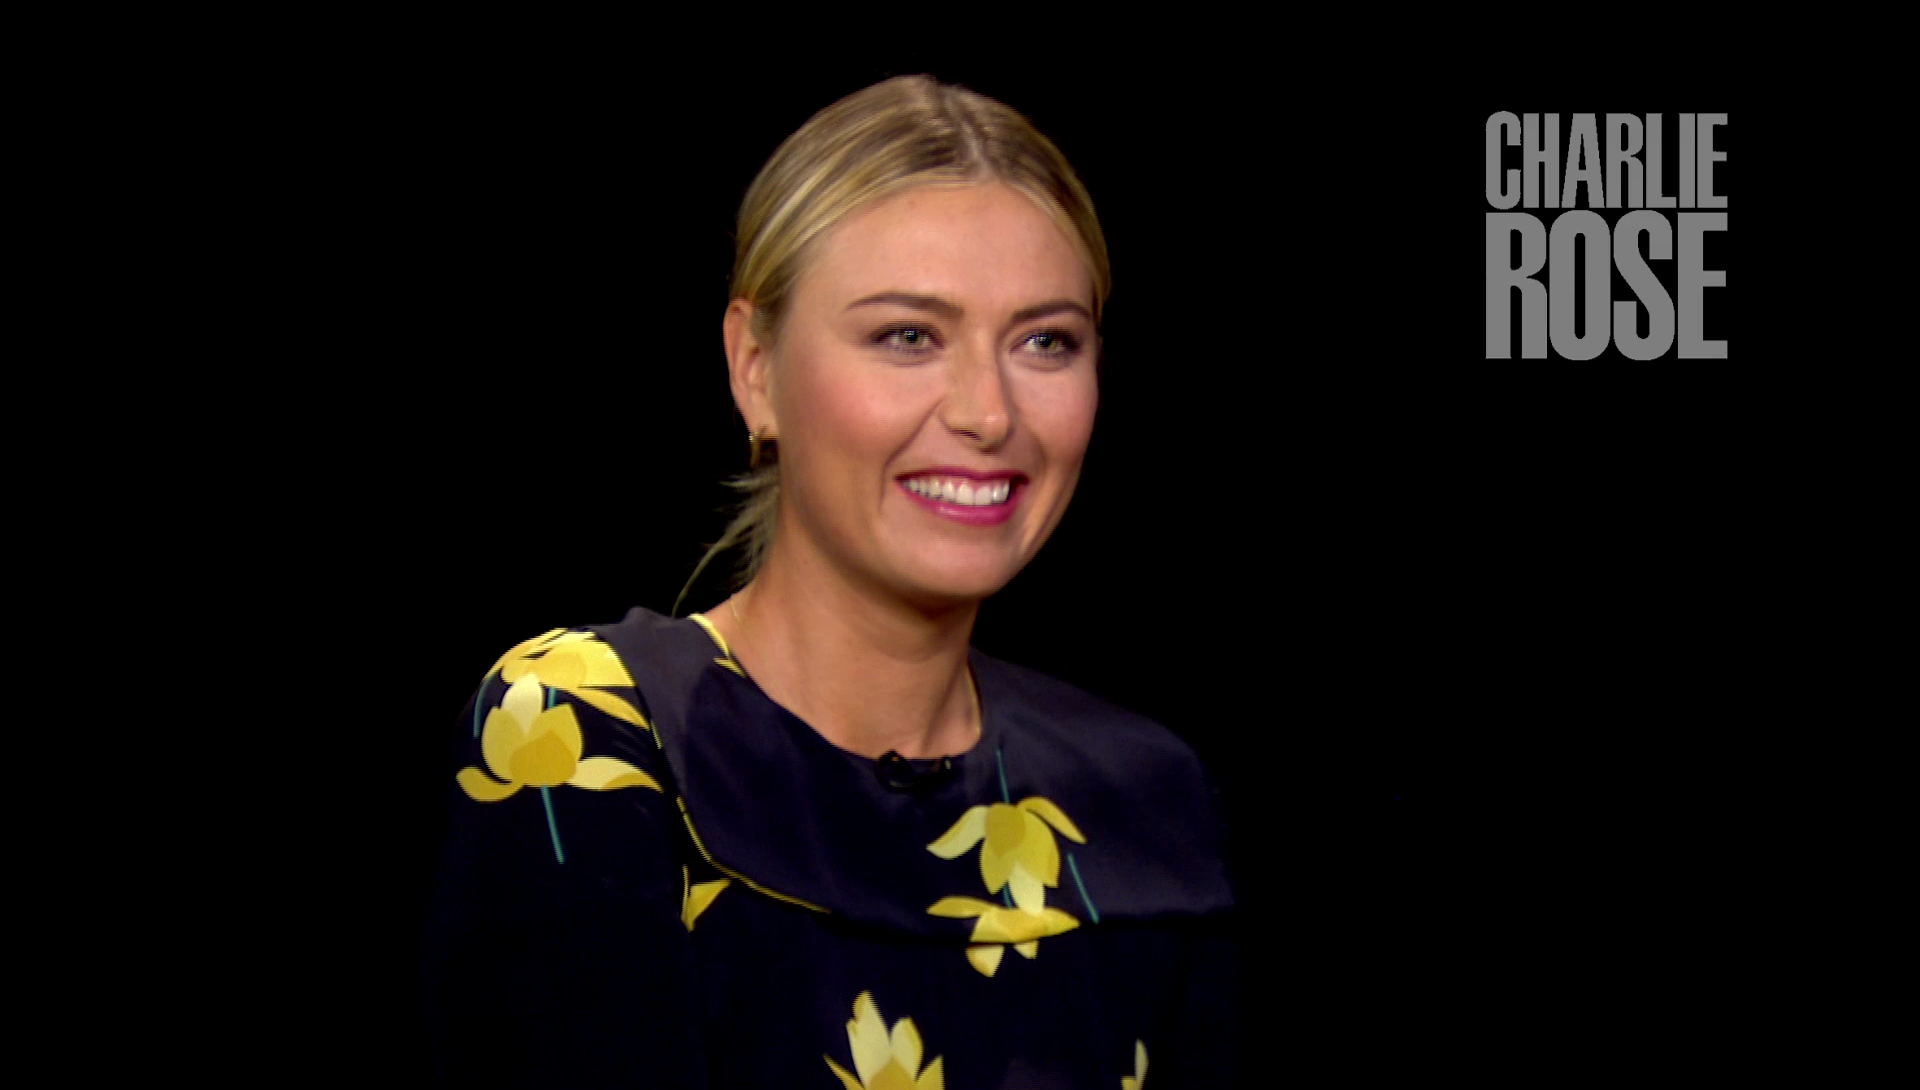 How Maria Sharapova Has Trained Since Her Suspension